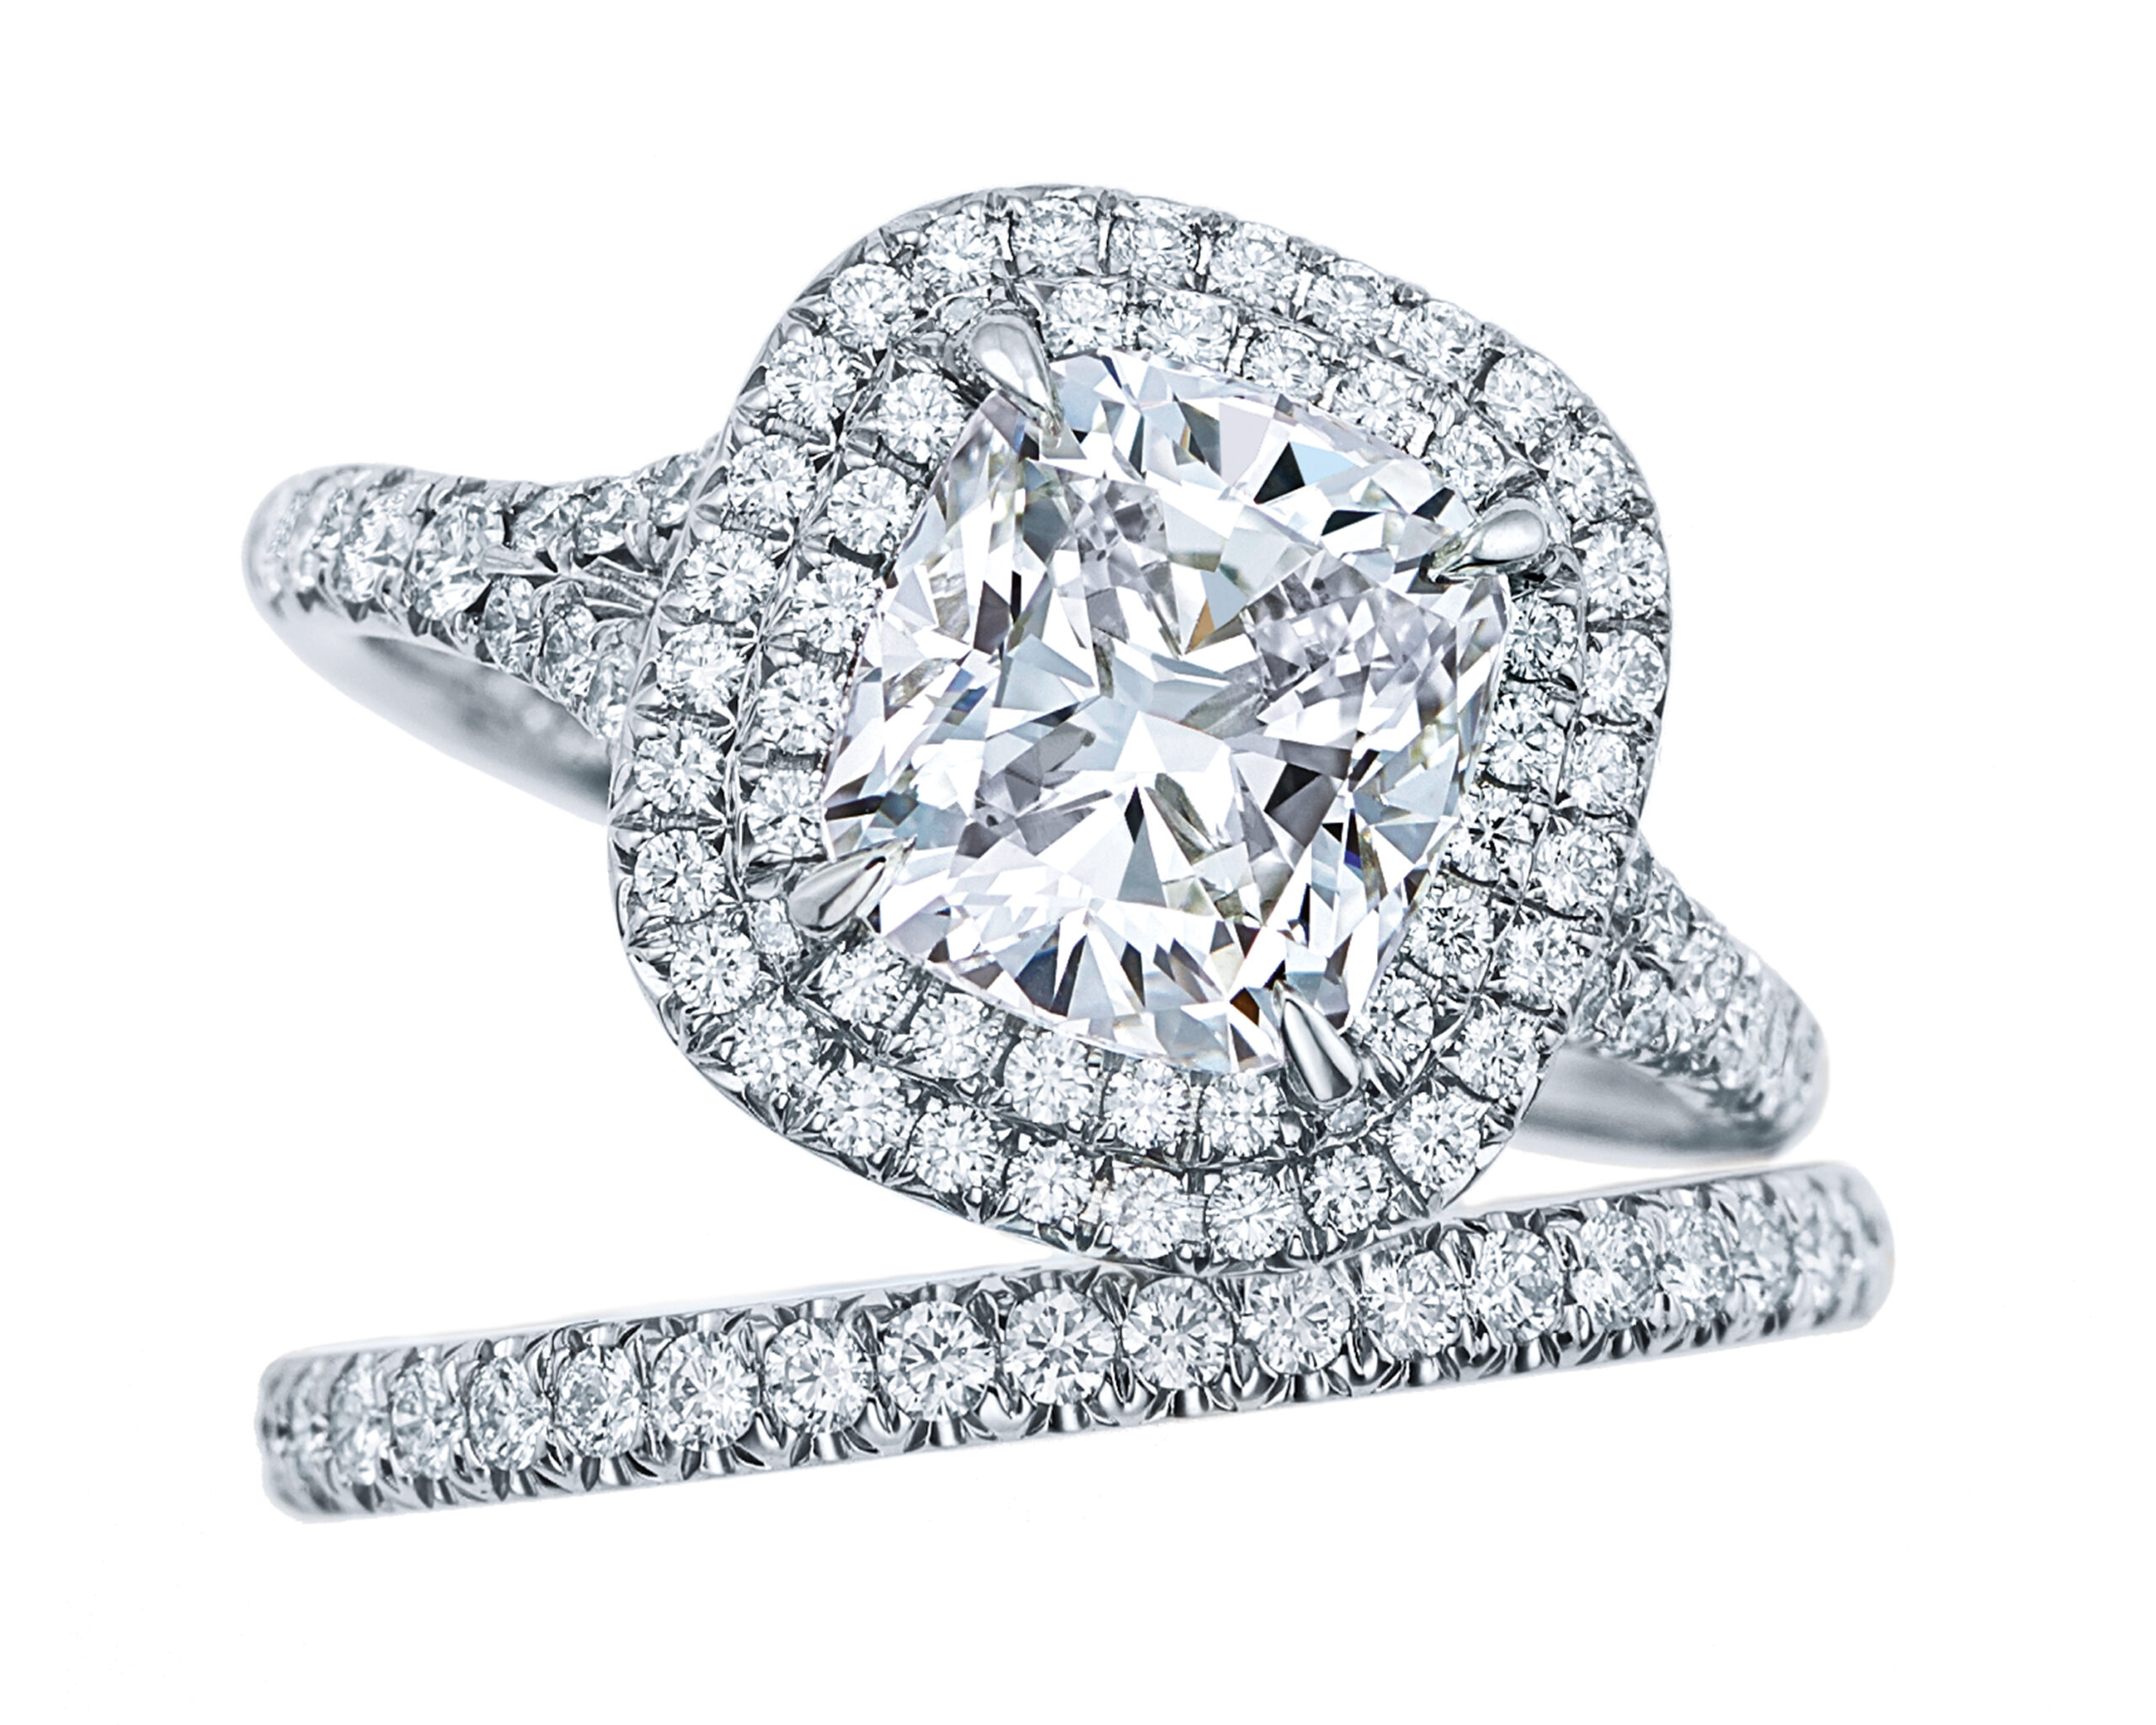 Tiffany Soleste® engagement ring and matching band in platinum